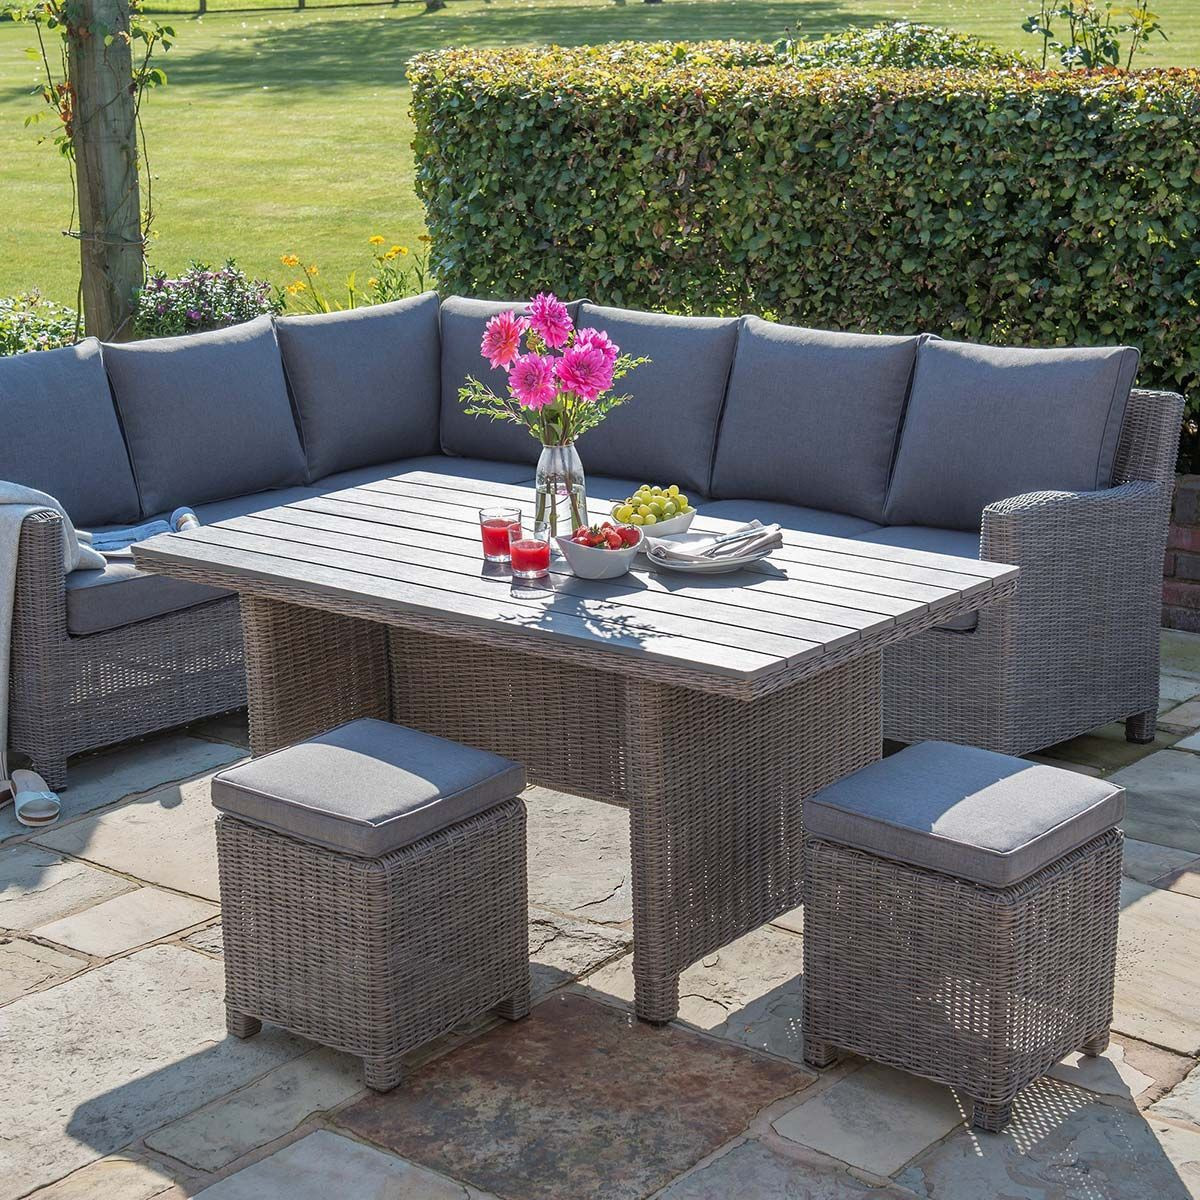 Kettler Palma Casual Dining Corner Set With Side Table - Rattan